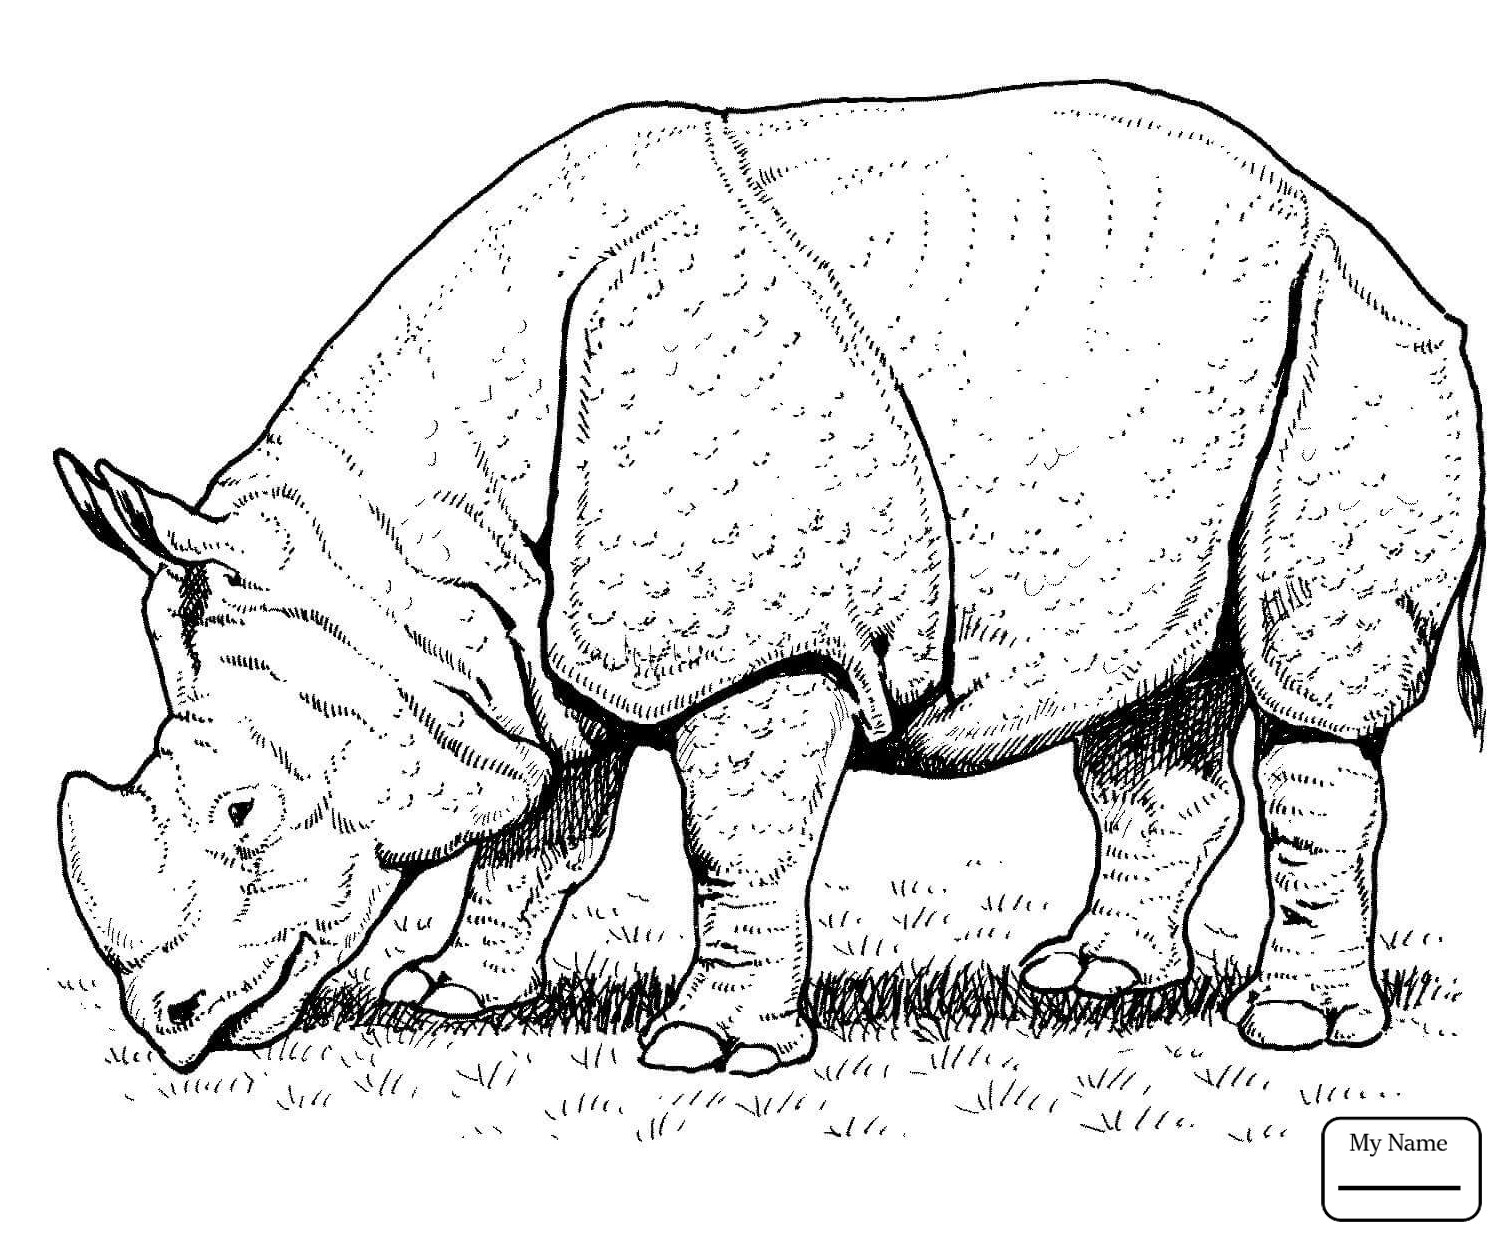 rhino coloring pages rhinoceros coloring pages at getdrawings free download pages rhino coloring